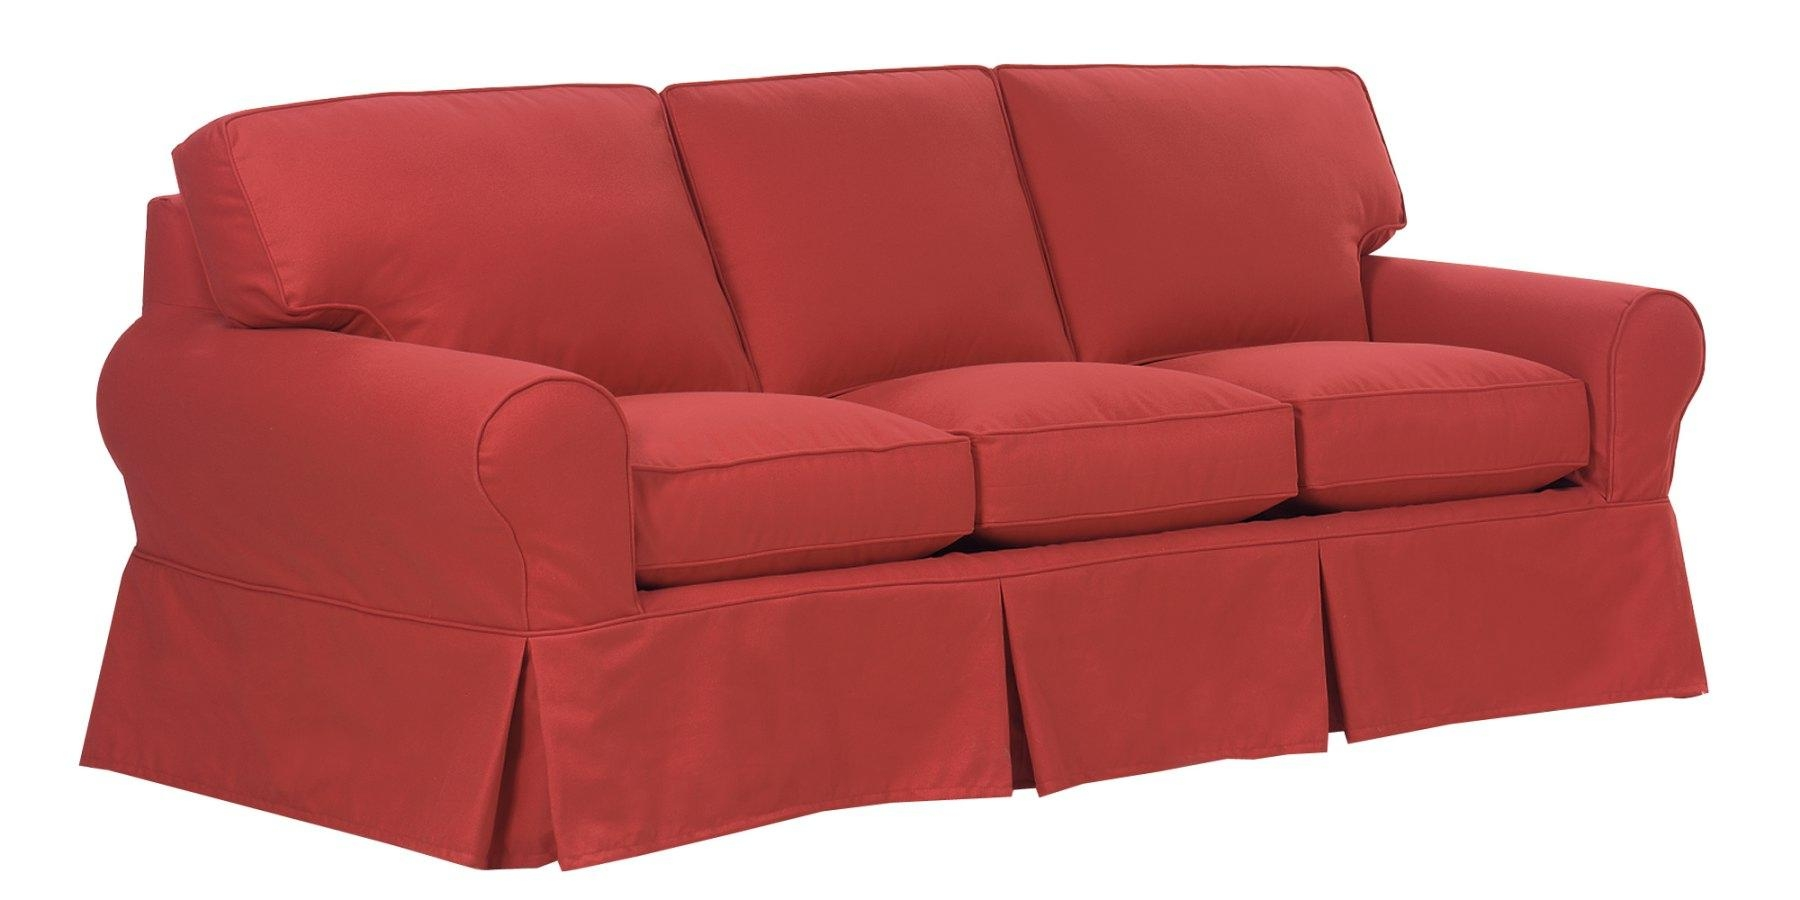 Comfortable Slipcovered Furniture, Slipcover Sofas, Couches For Slipcovers For Sofas And Chairs (Image 4 of 20)